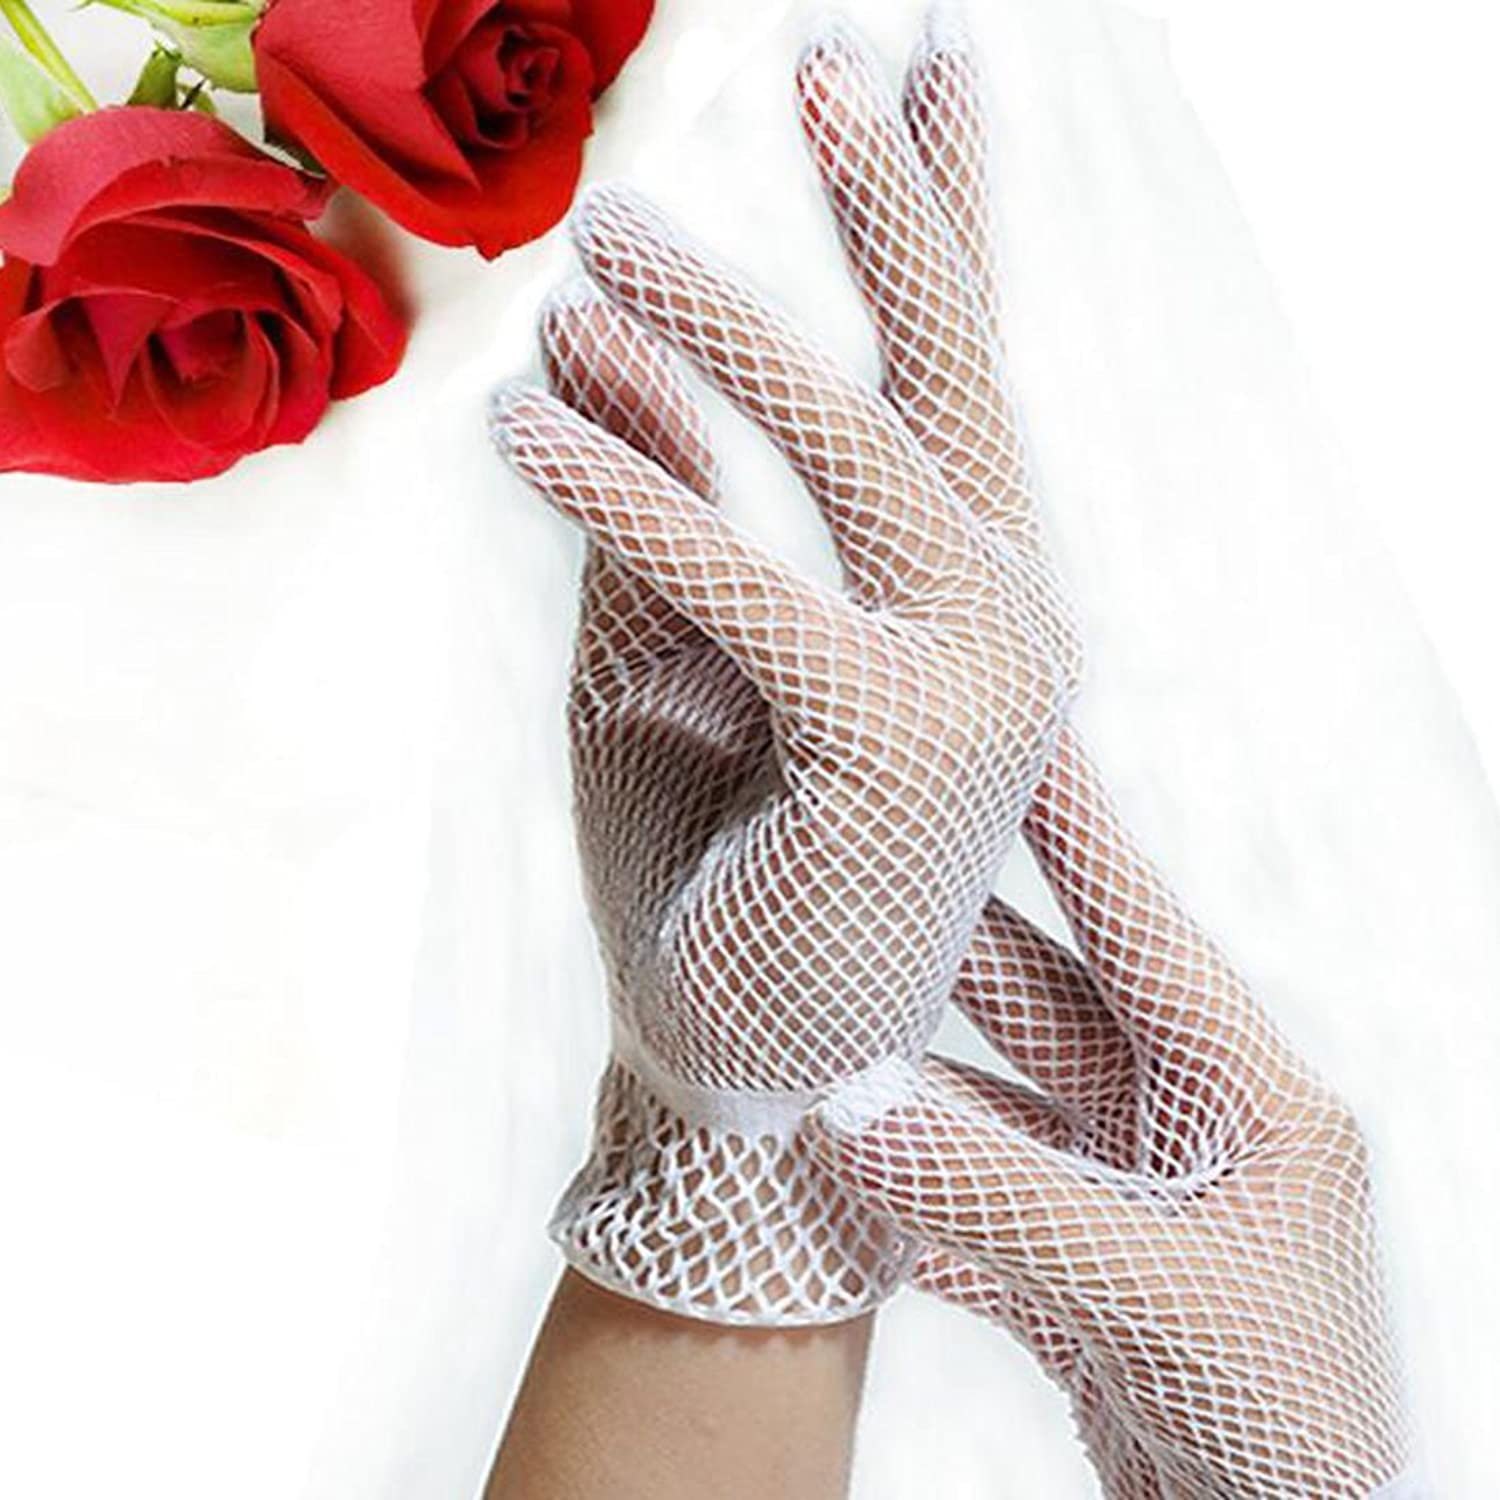 1920s Wedding Dresses- Art Deco Style 1 Pair Fishnet Mesh Gloves Fashion Women Gloves Summer UV Protection Lace Glove White $2.11 AT vintagedancer.com